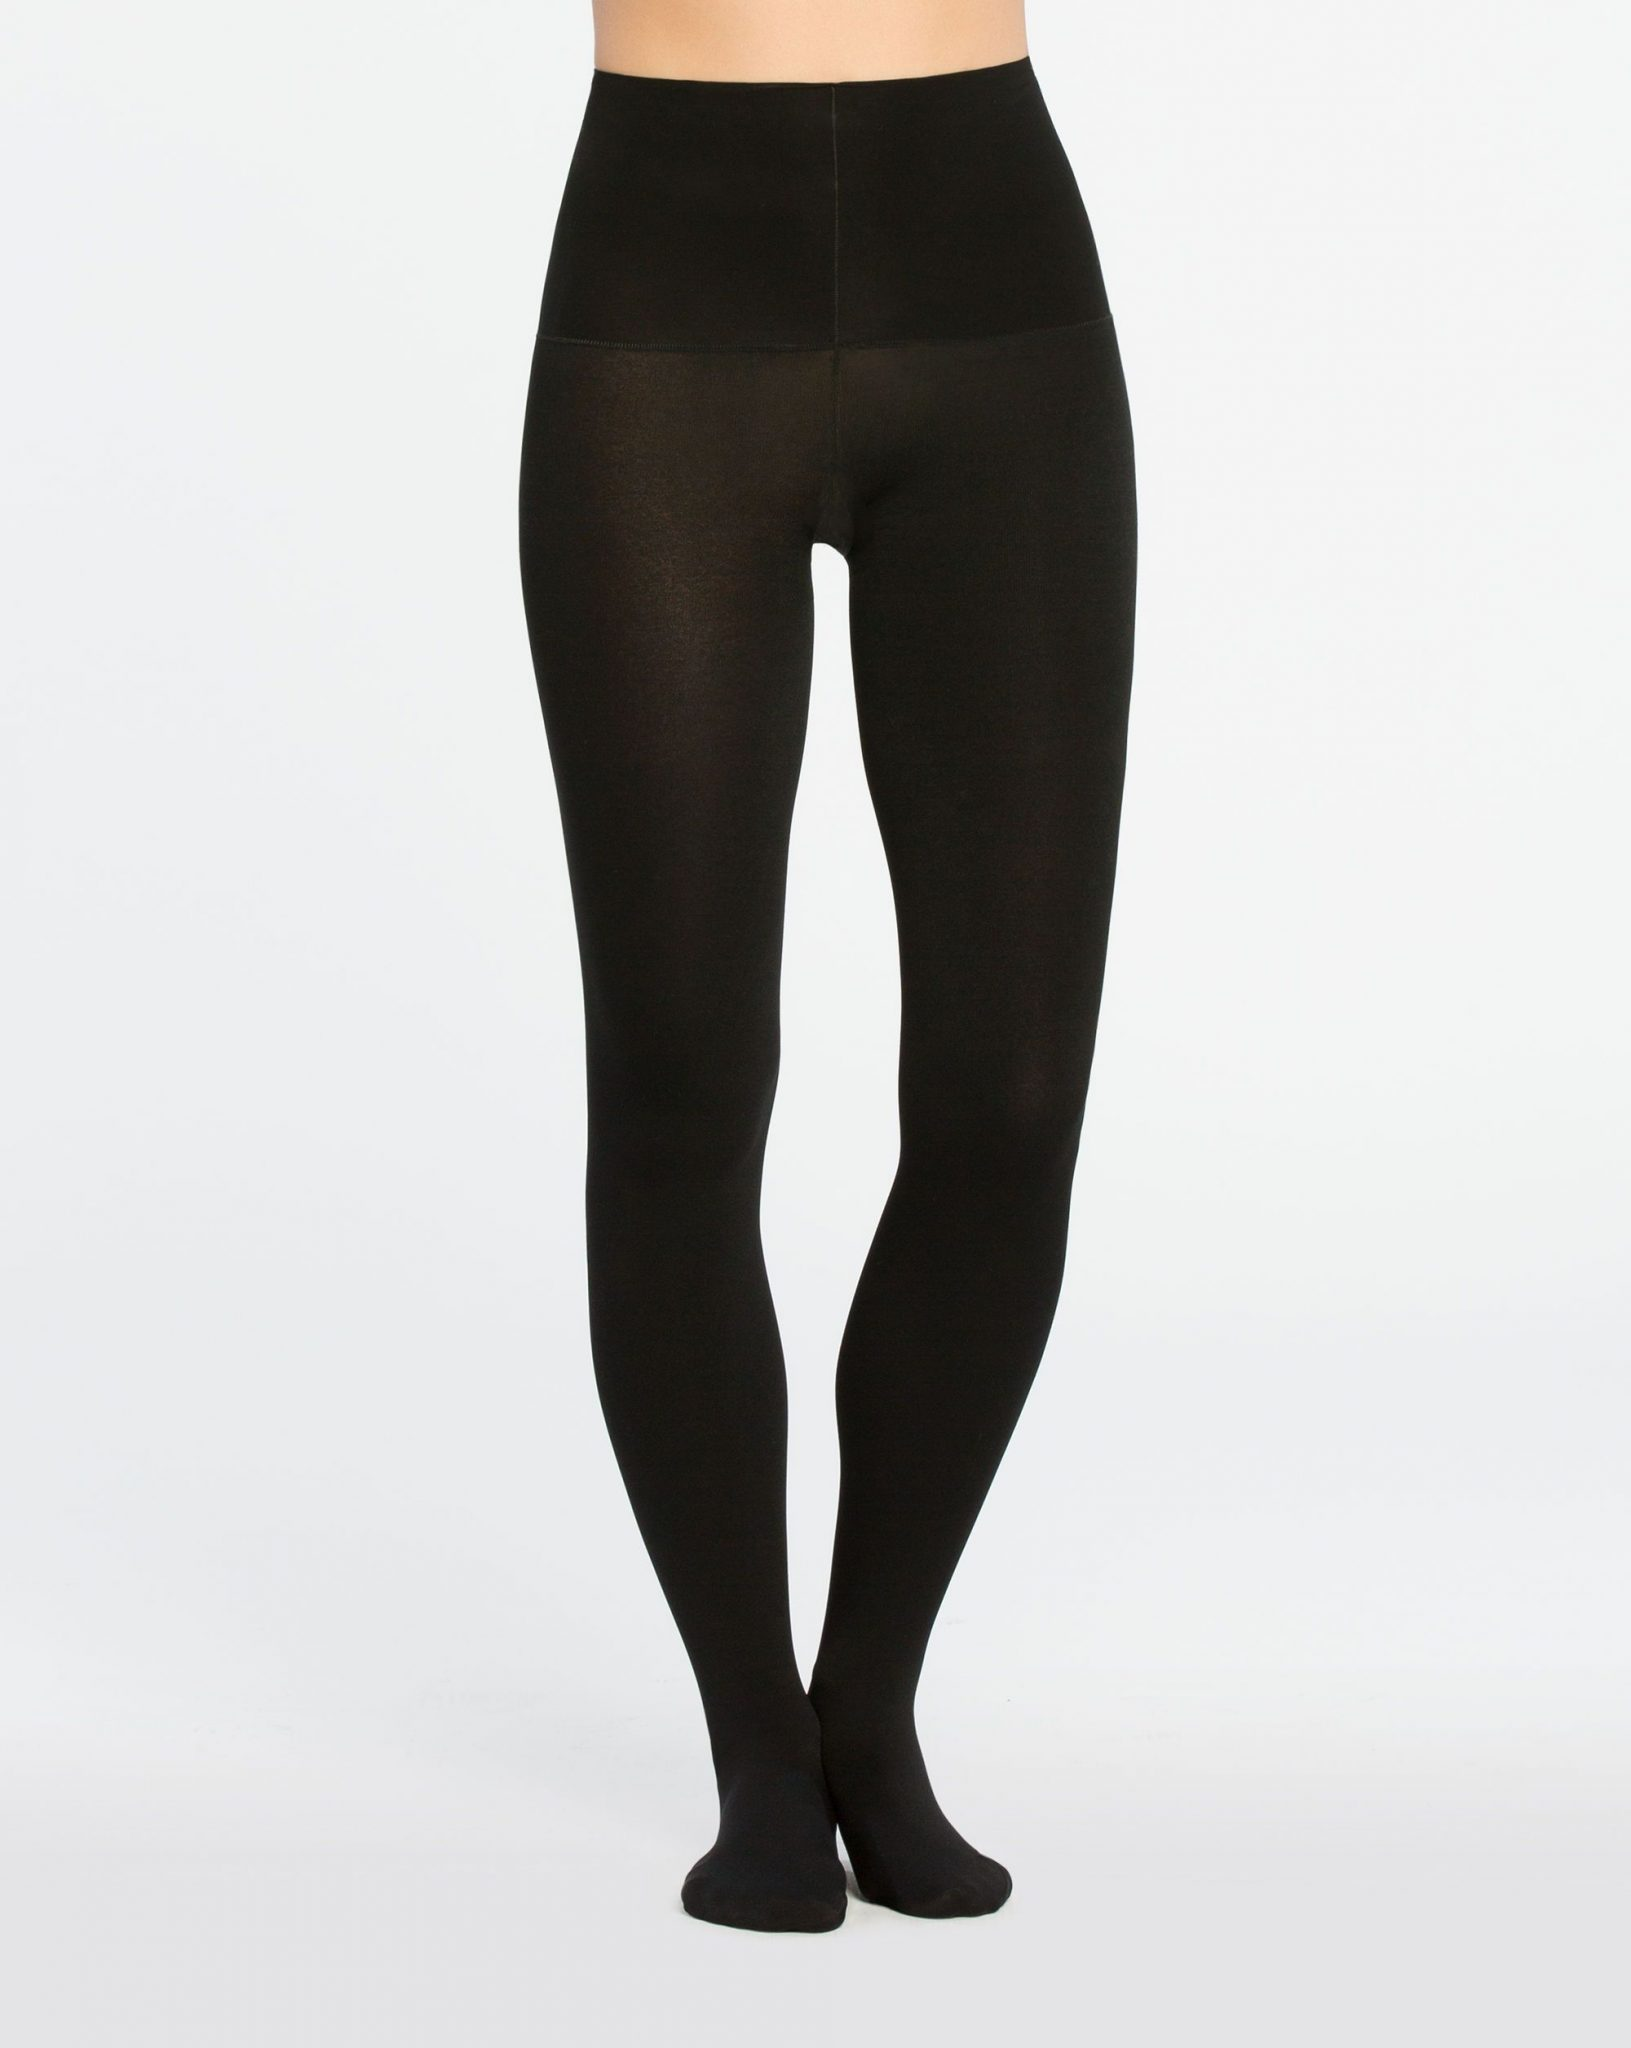 3983b9f264 I know there is a feminist argument to be made for eschewing Spanx and  control-top hosiery of all kinds